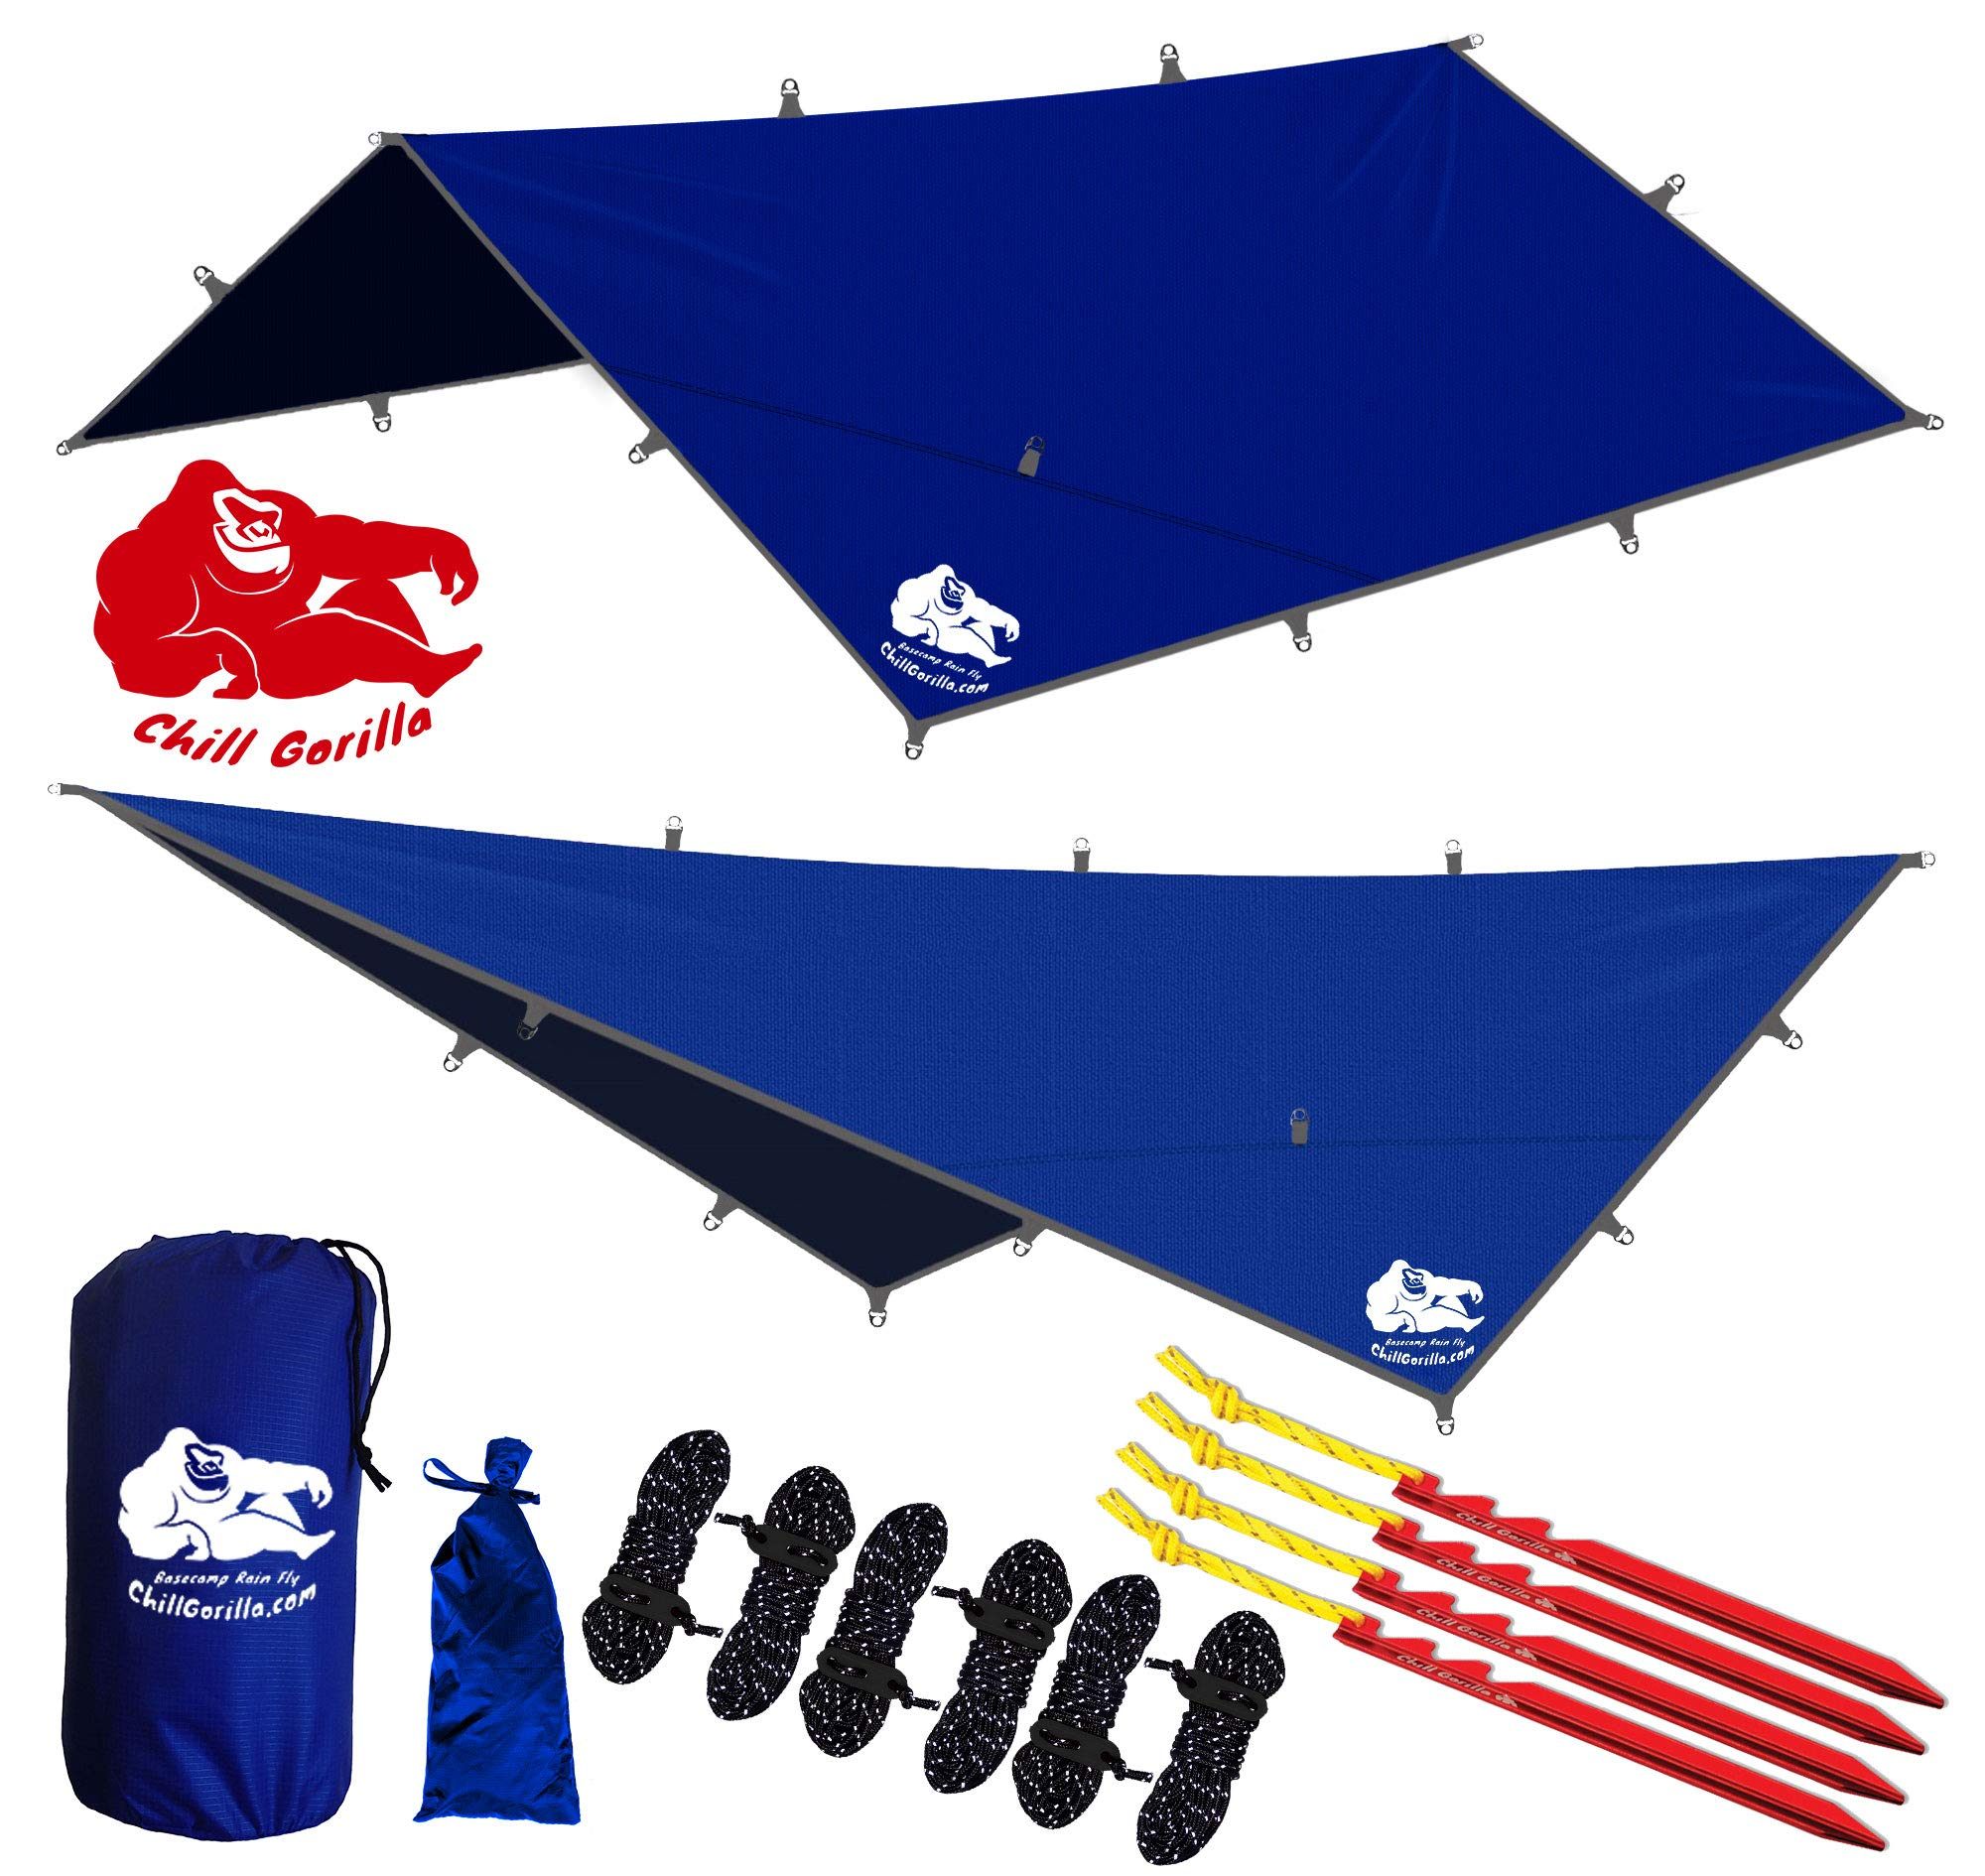 Chill Gorilla 12x12 Hammock Rain Fly Camping Tarp. Ripstop Nylon. 203'' Centerline. Stakes, Ropes & Tensioners Included. Camping Gear & Accessories. Perfect Hammock Tent. Blue by Chill Gorilla